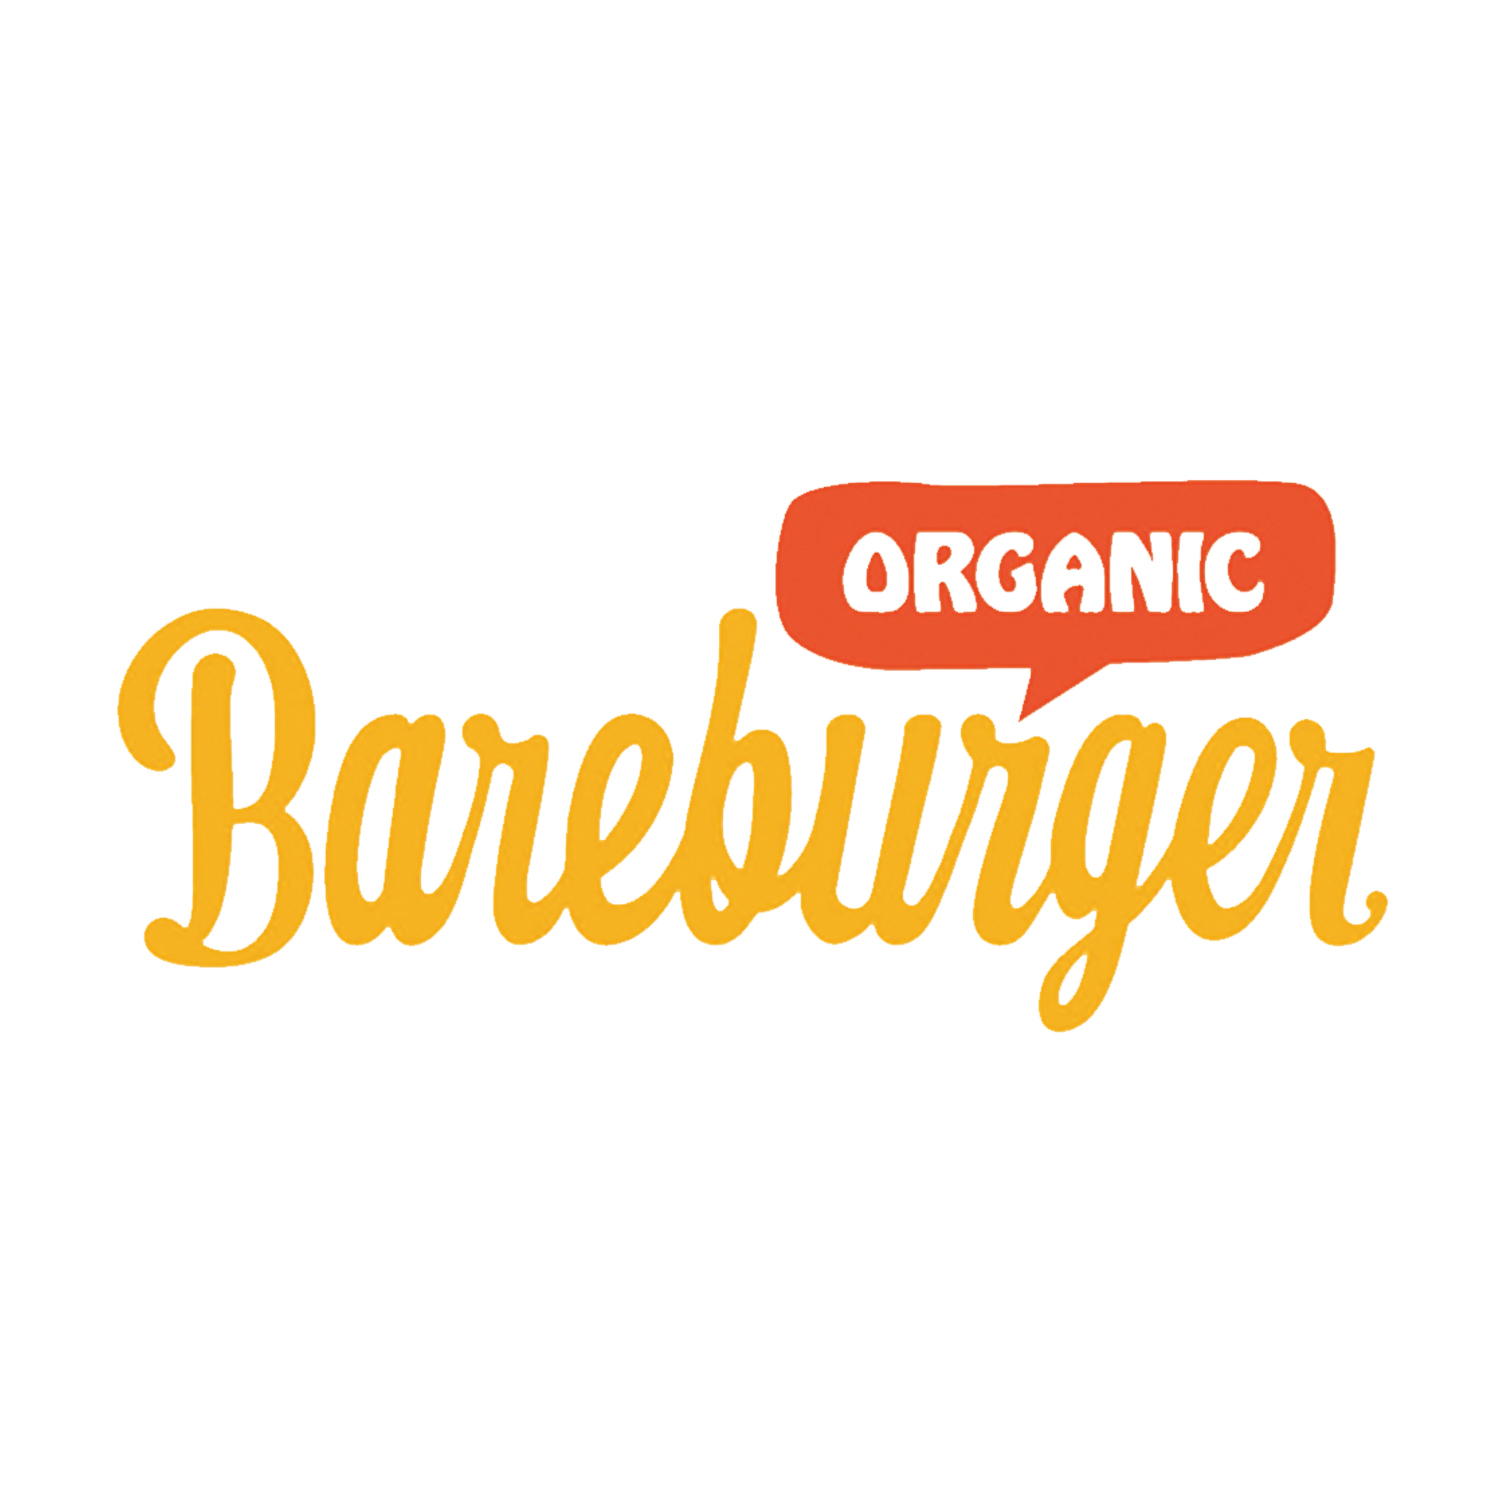 Bareburger : Casual, eco-minded regional chain for organic burgers (from beef to bison) & more, plus beer & wine.